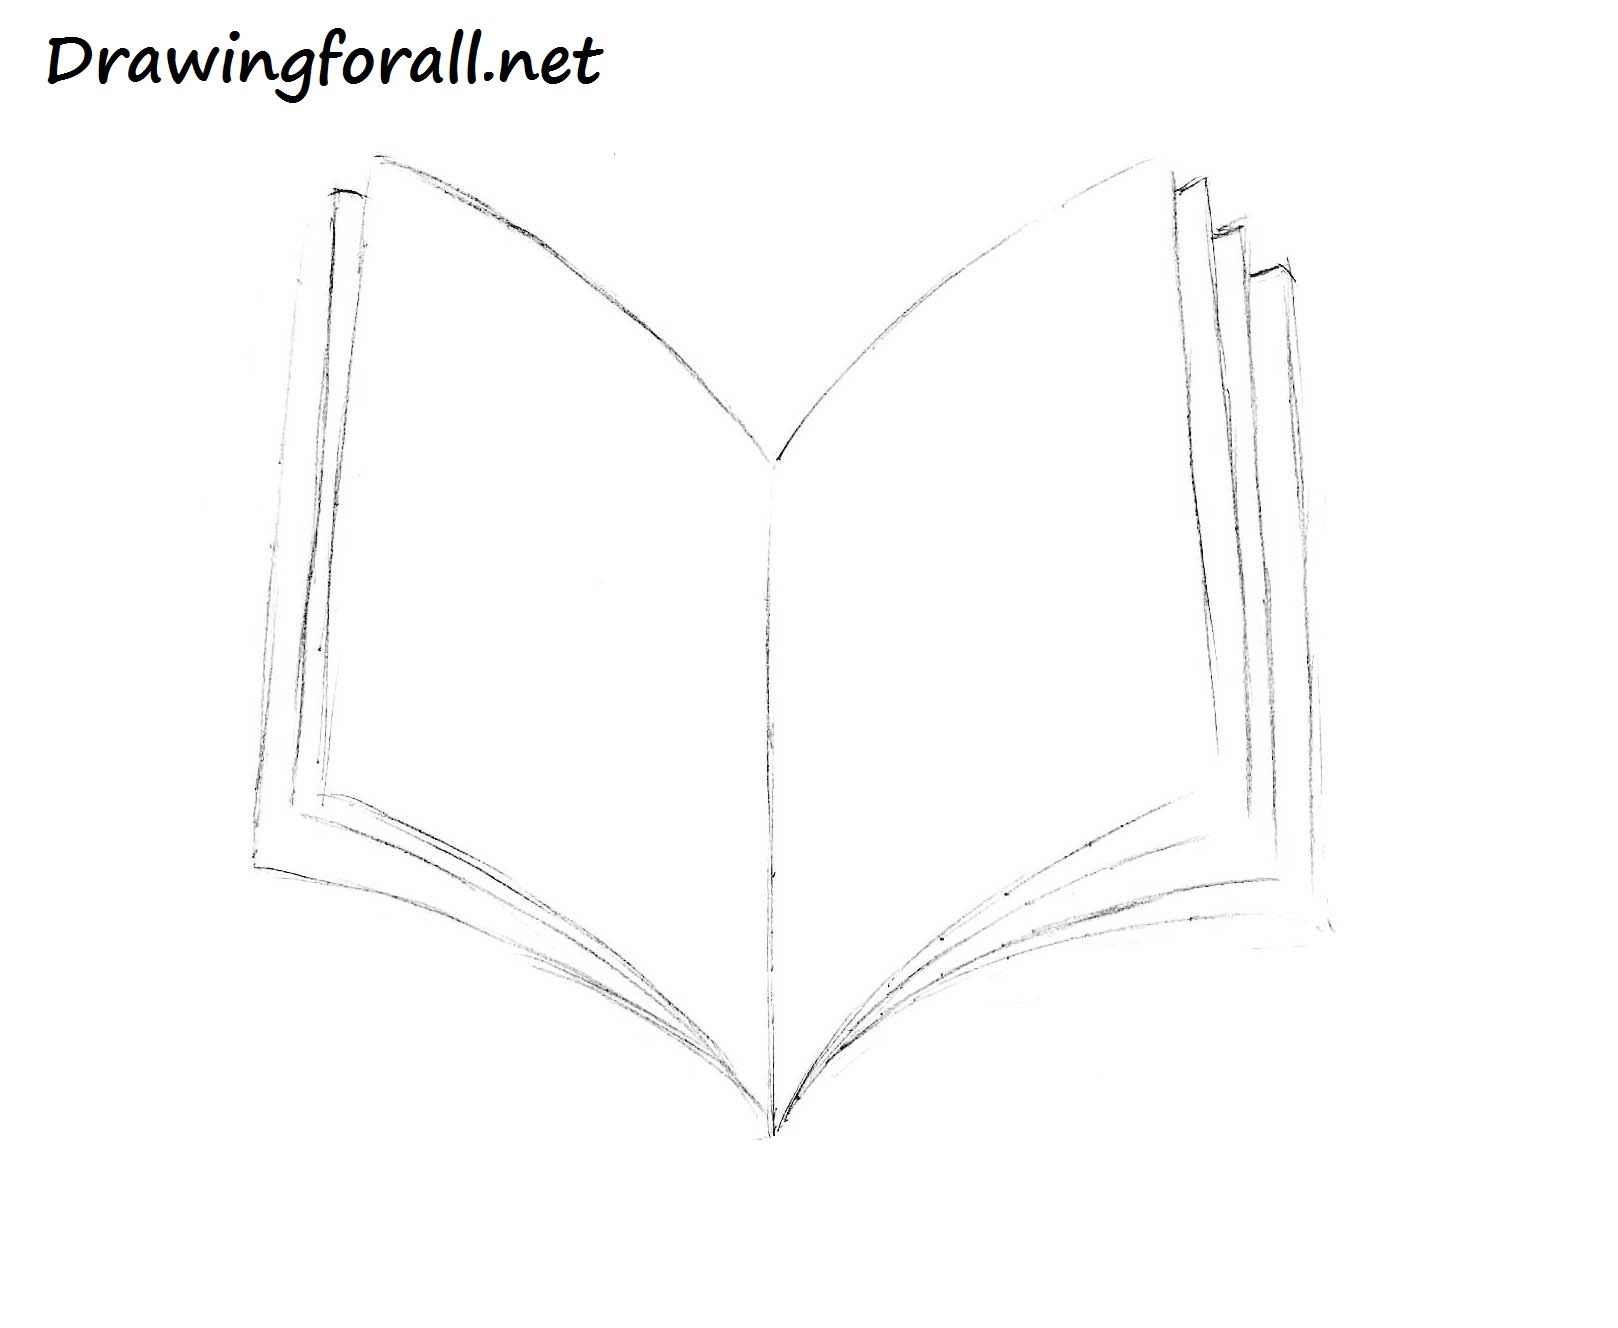 How to Draw a Book   DrawingForAll.net